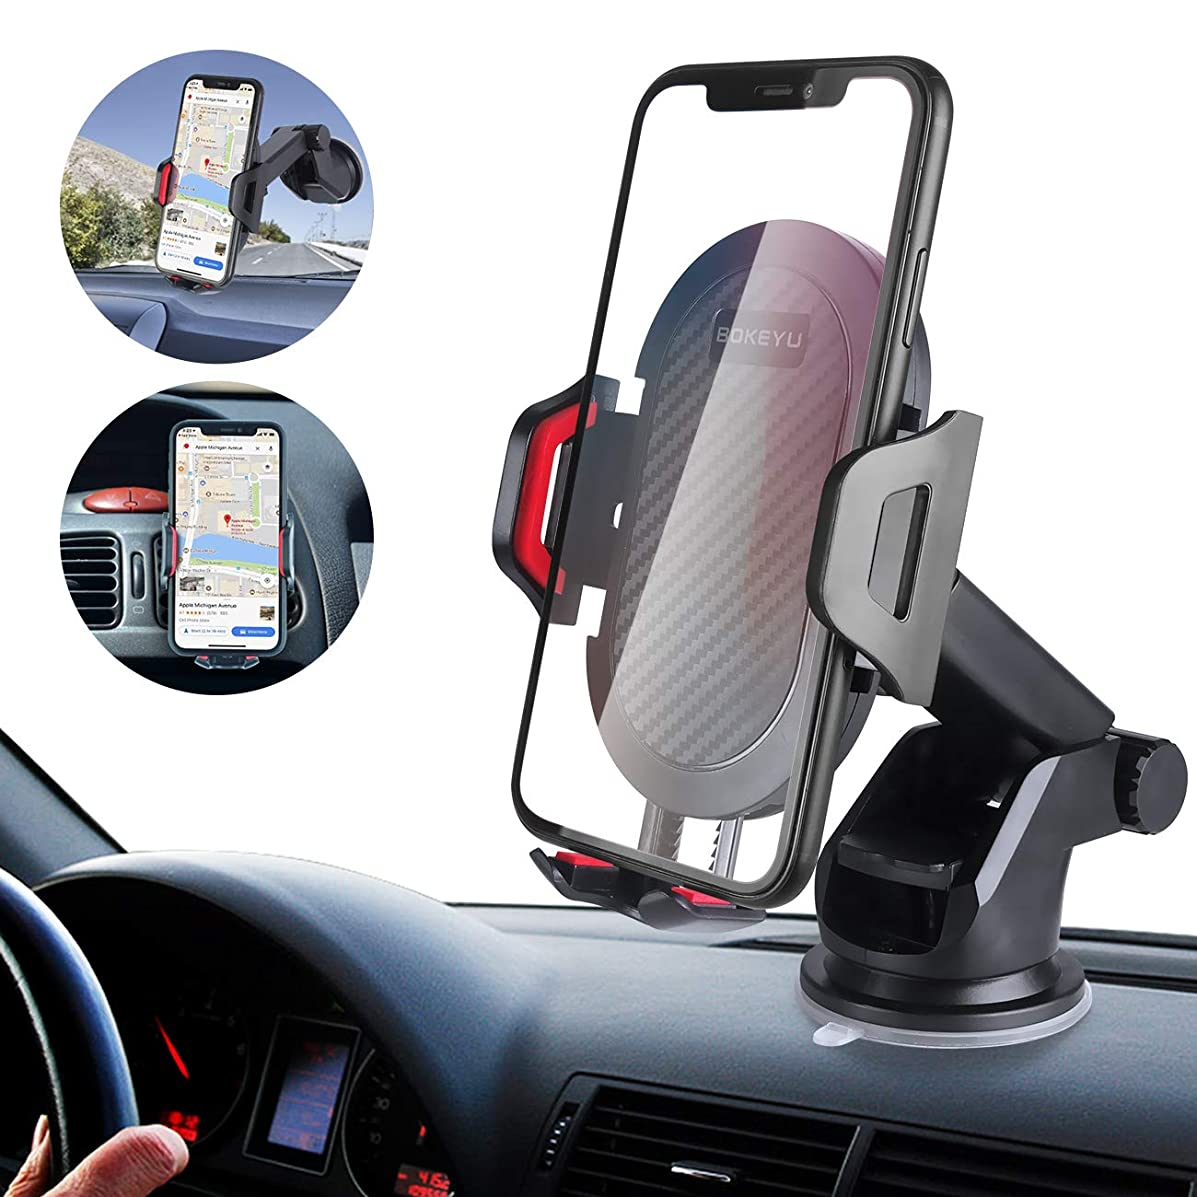 BOKEYU Car Phone Mount Dashboard Windshield Air Vent Cell Phone Holder for Car Strong Sticky Suction Cup Adjustable Long Arm One Button Release Perfect for 4-6.7'' Smartphones